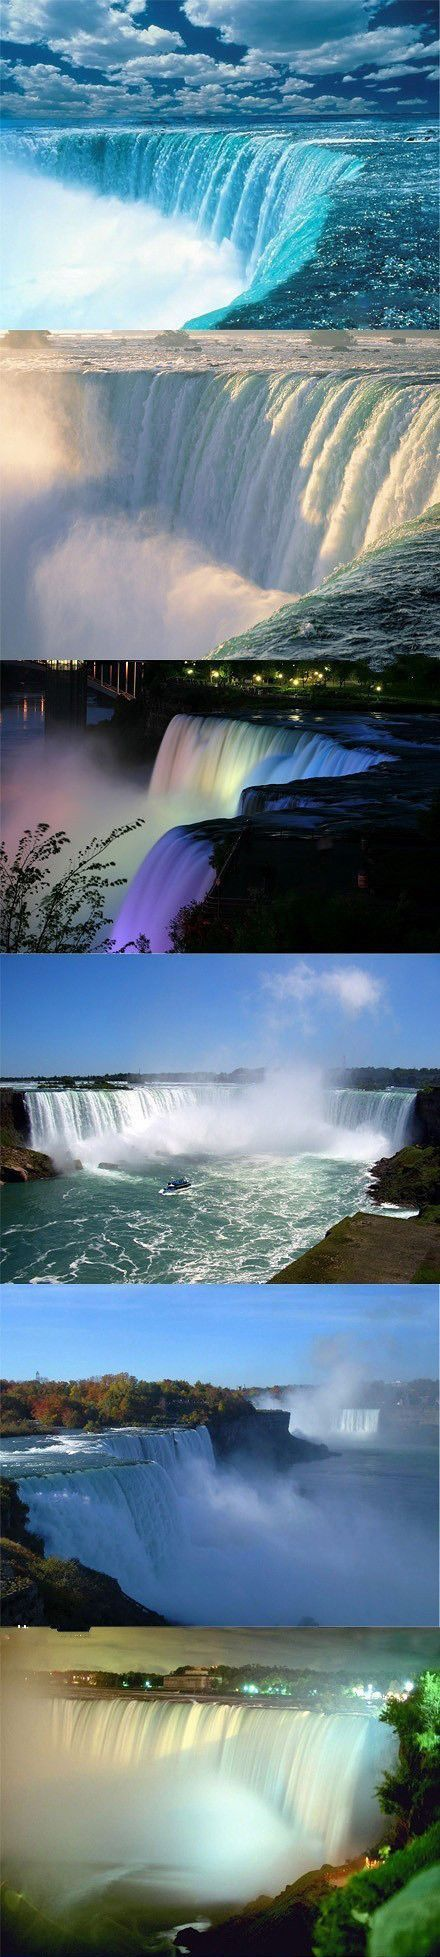 Niagara Falls, both the U.S. side and the Canadian side.                                                                                                                                                      More